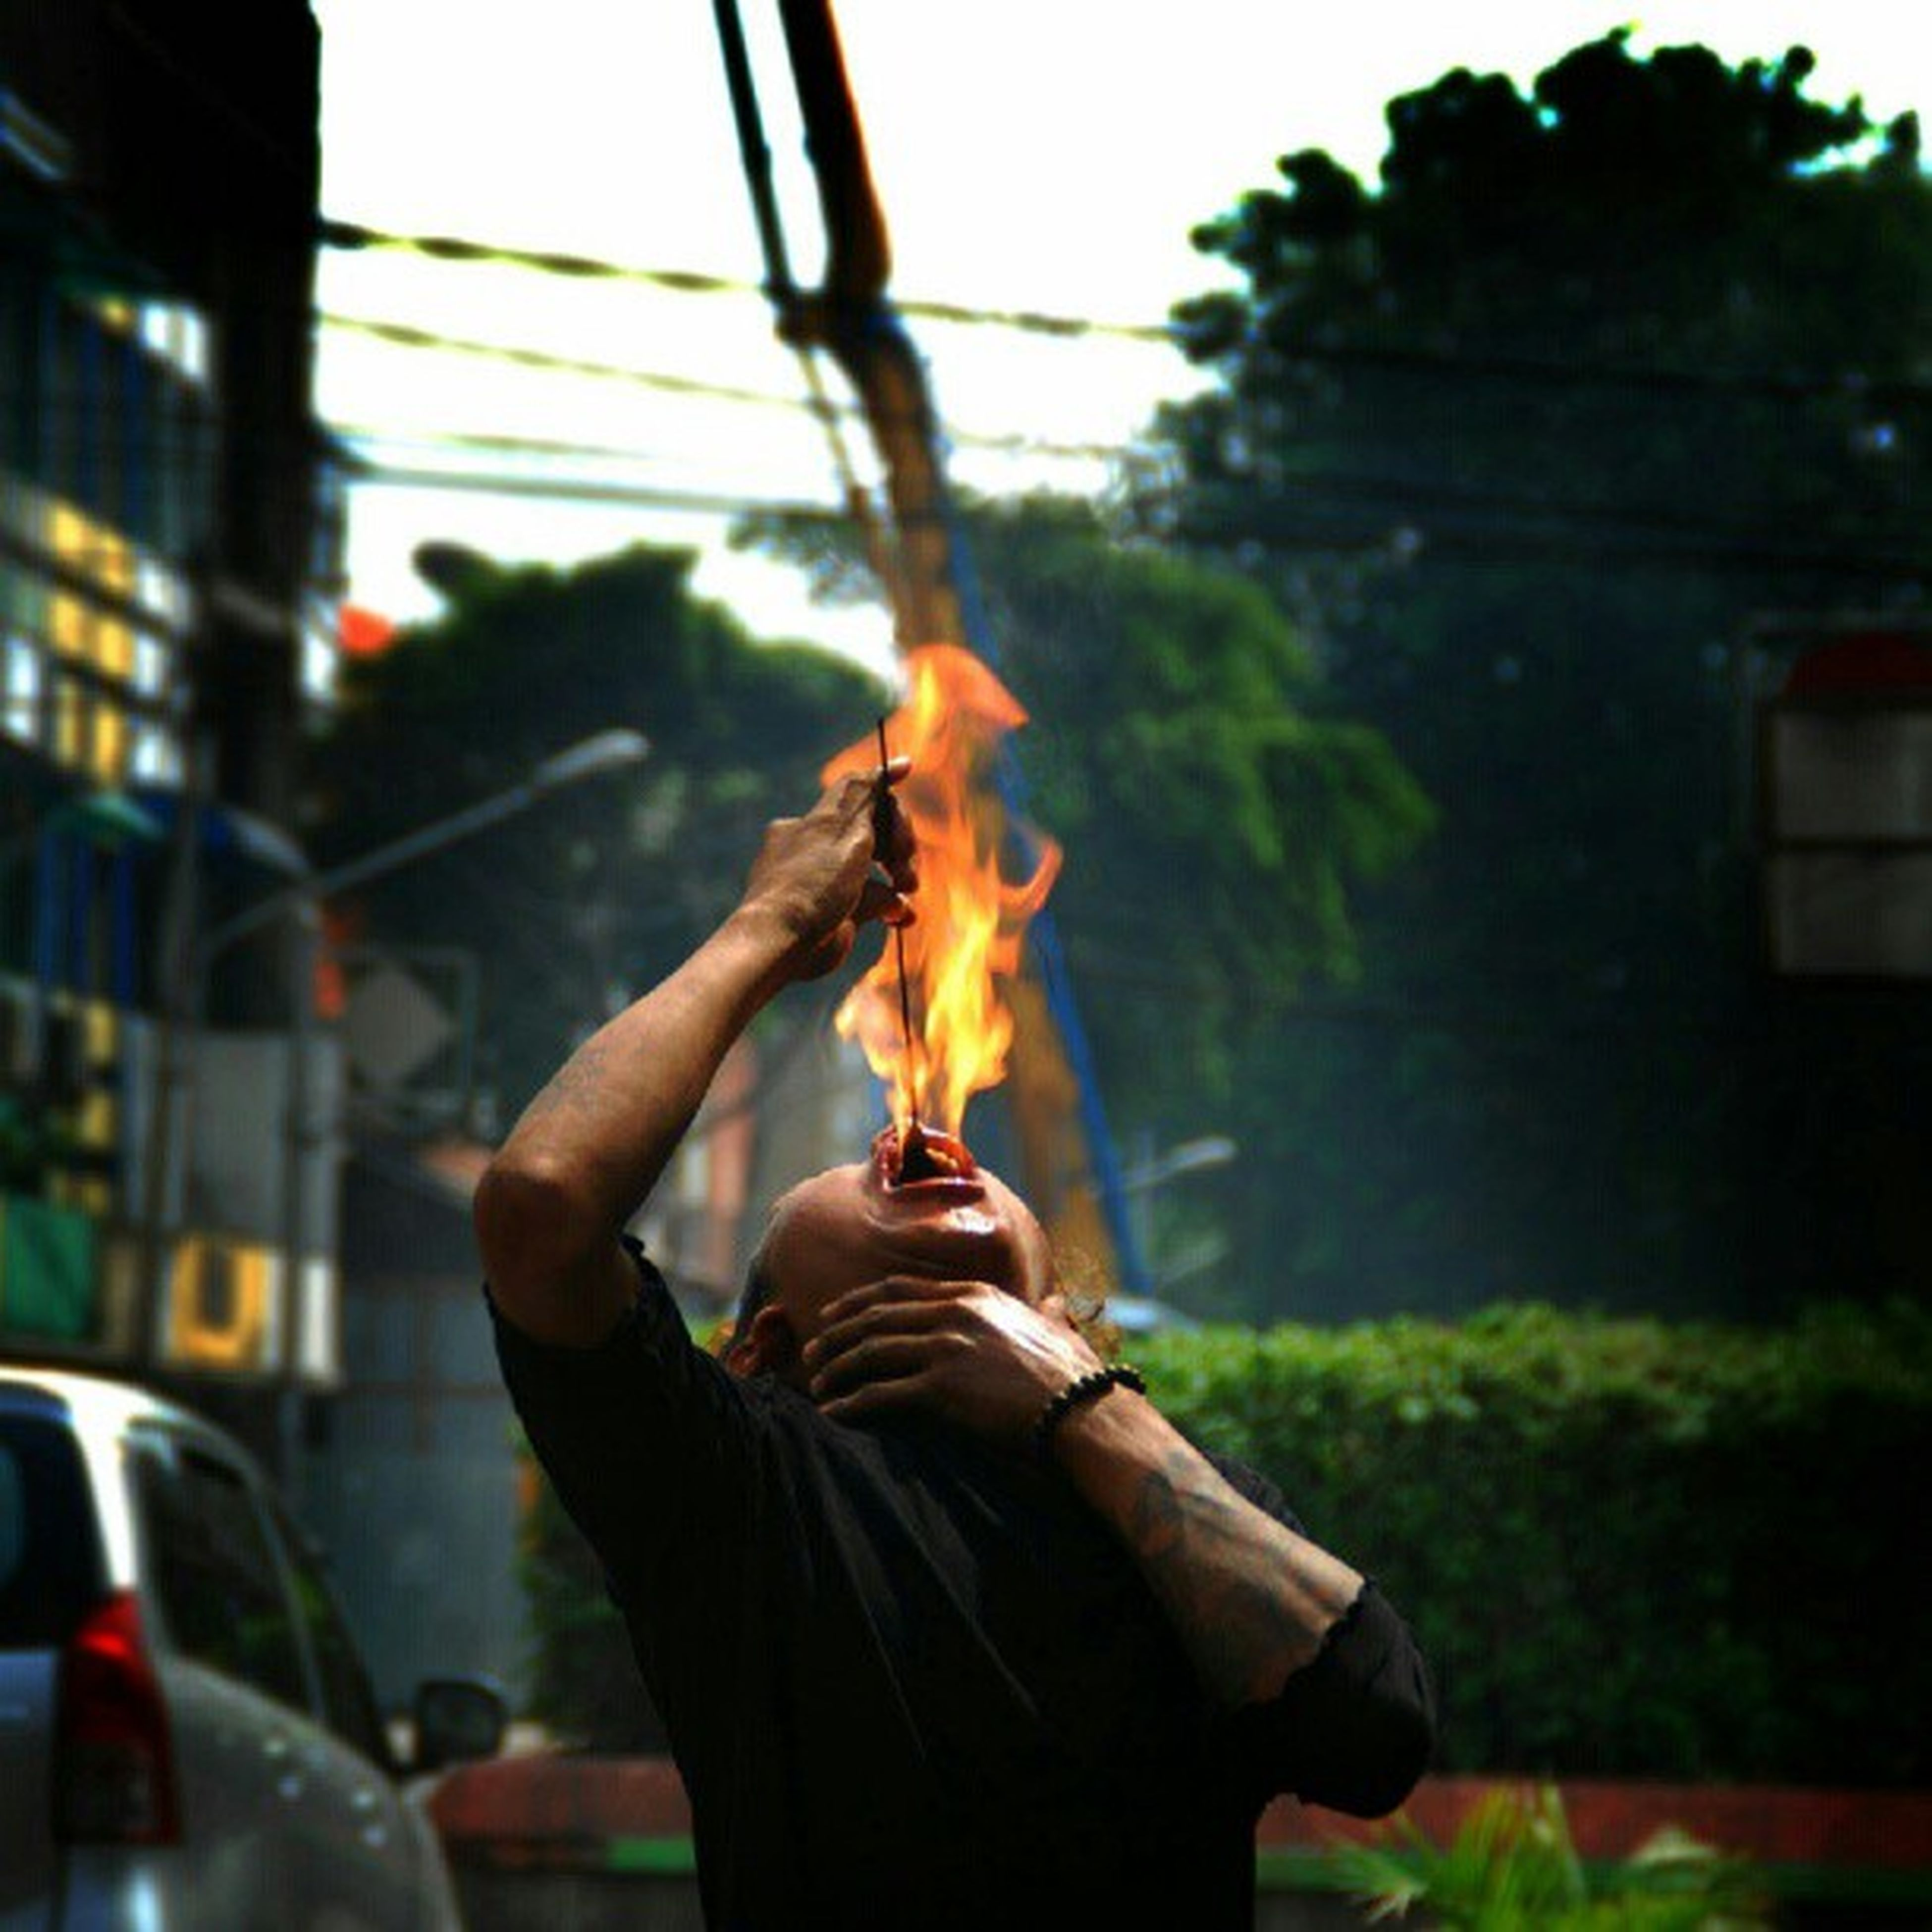 lifestyles, focus on foreground, person, men, holding, leisure activity, flame, burning, selective focus, unrecognizable person, outdoors, close-up, fire - natural phenomenon, part of, standing, cropped